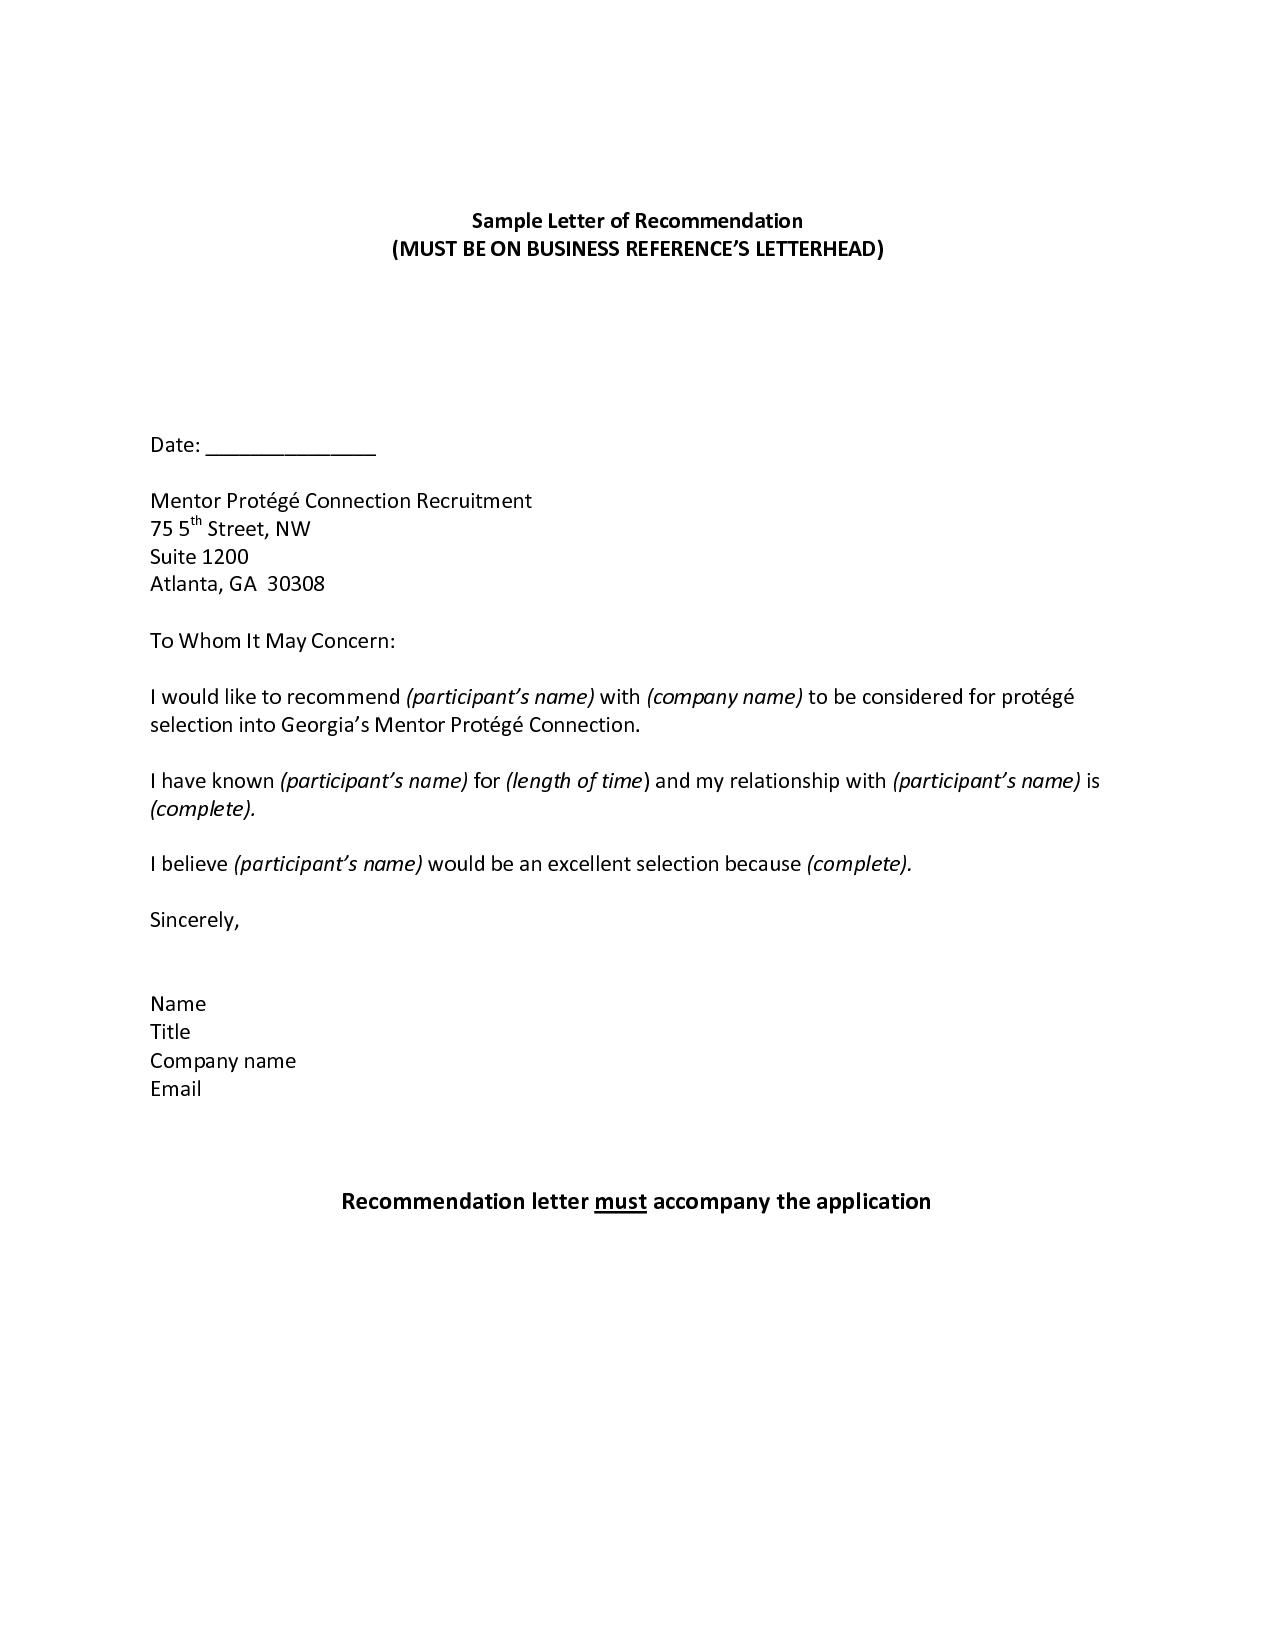 Professional Reference Sample Recommendation Letter Jos – Sample Reference Letter for Business